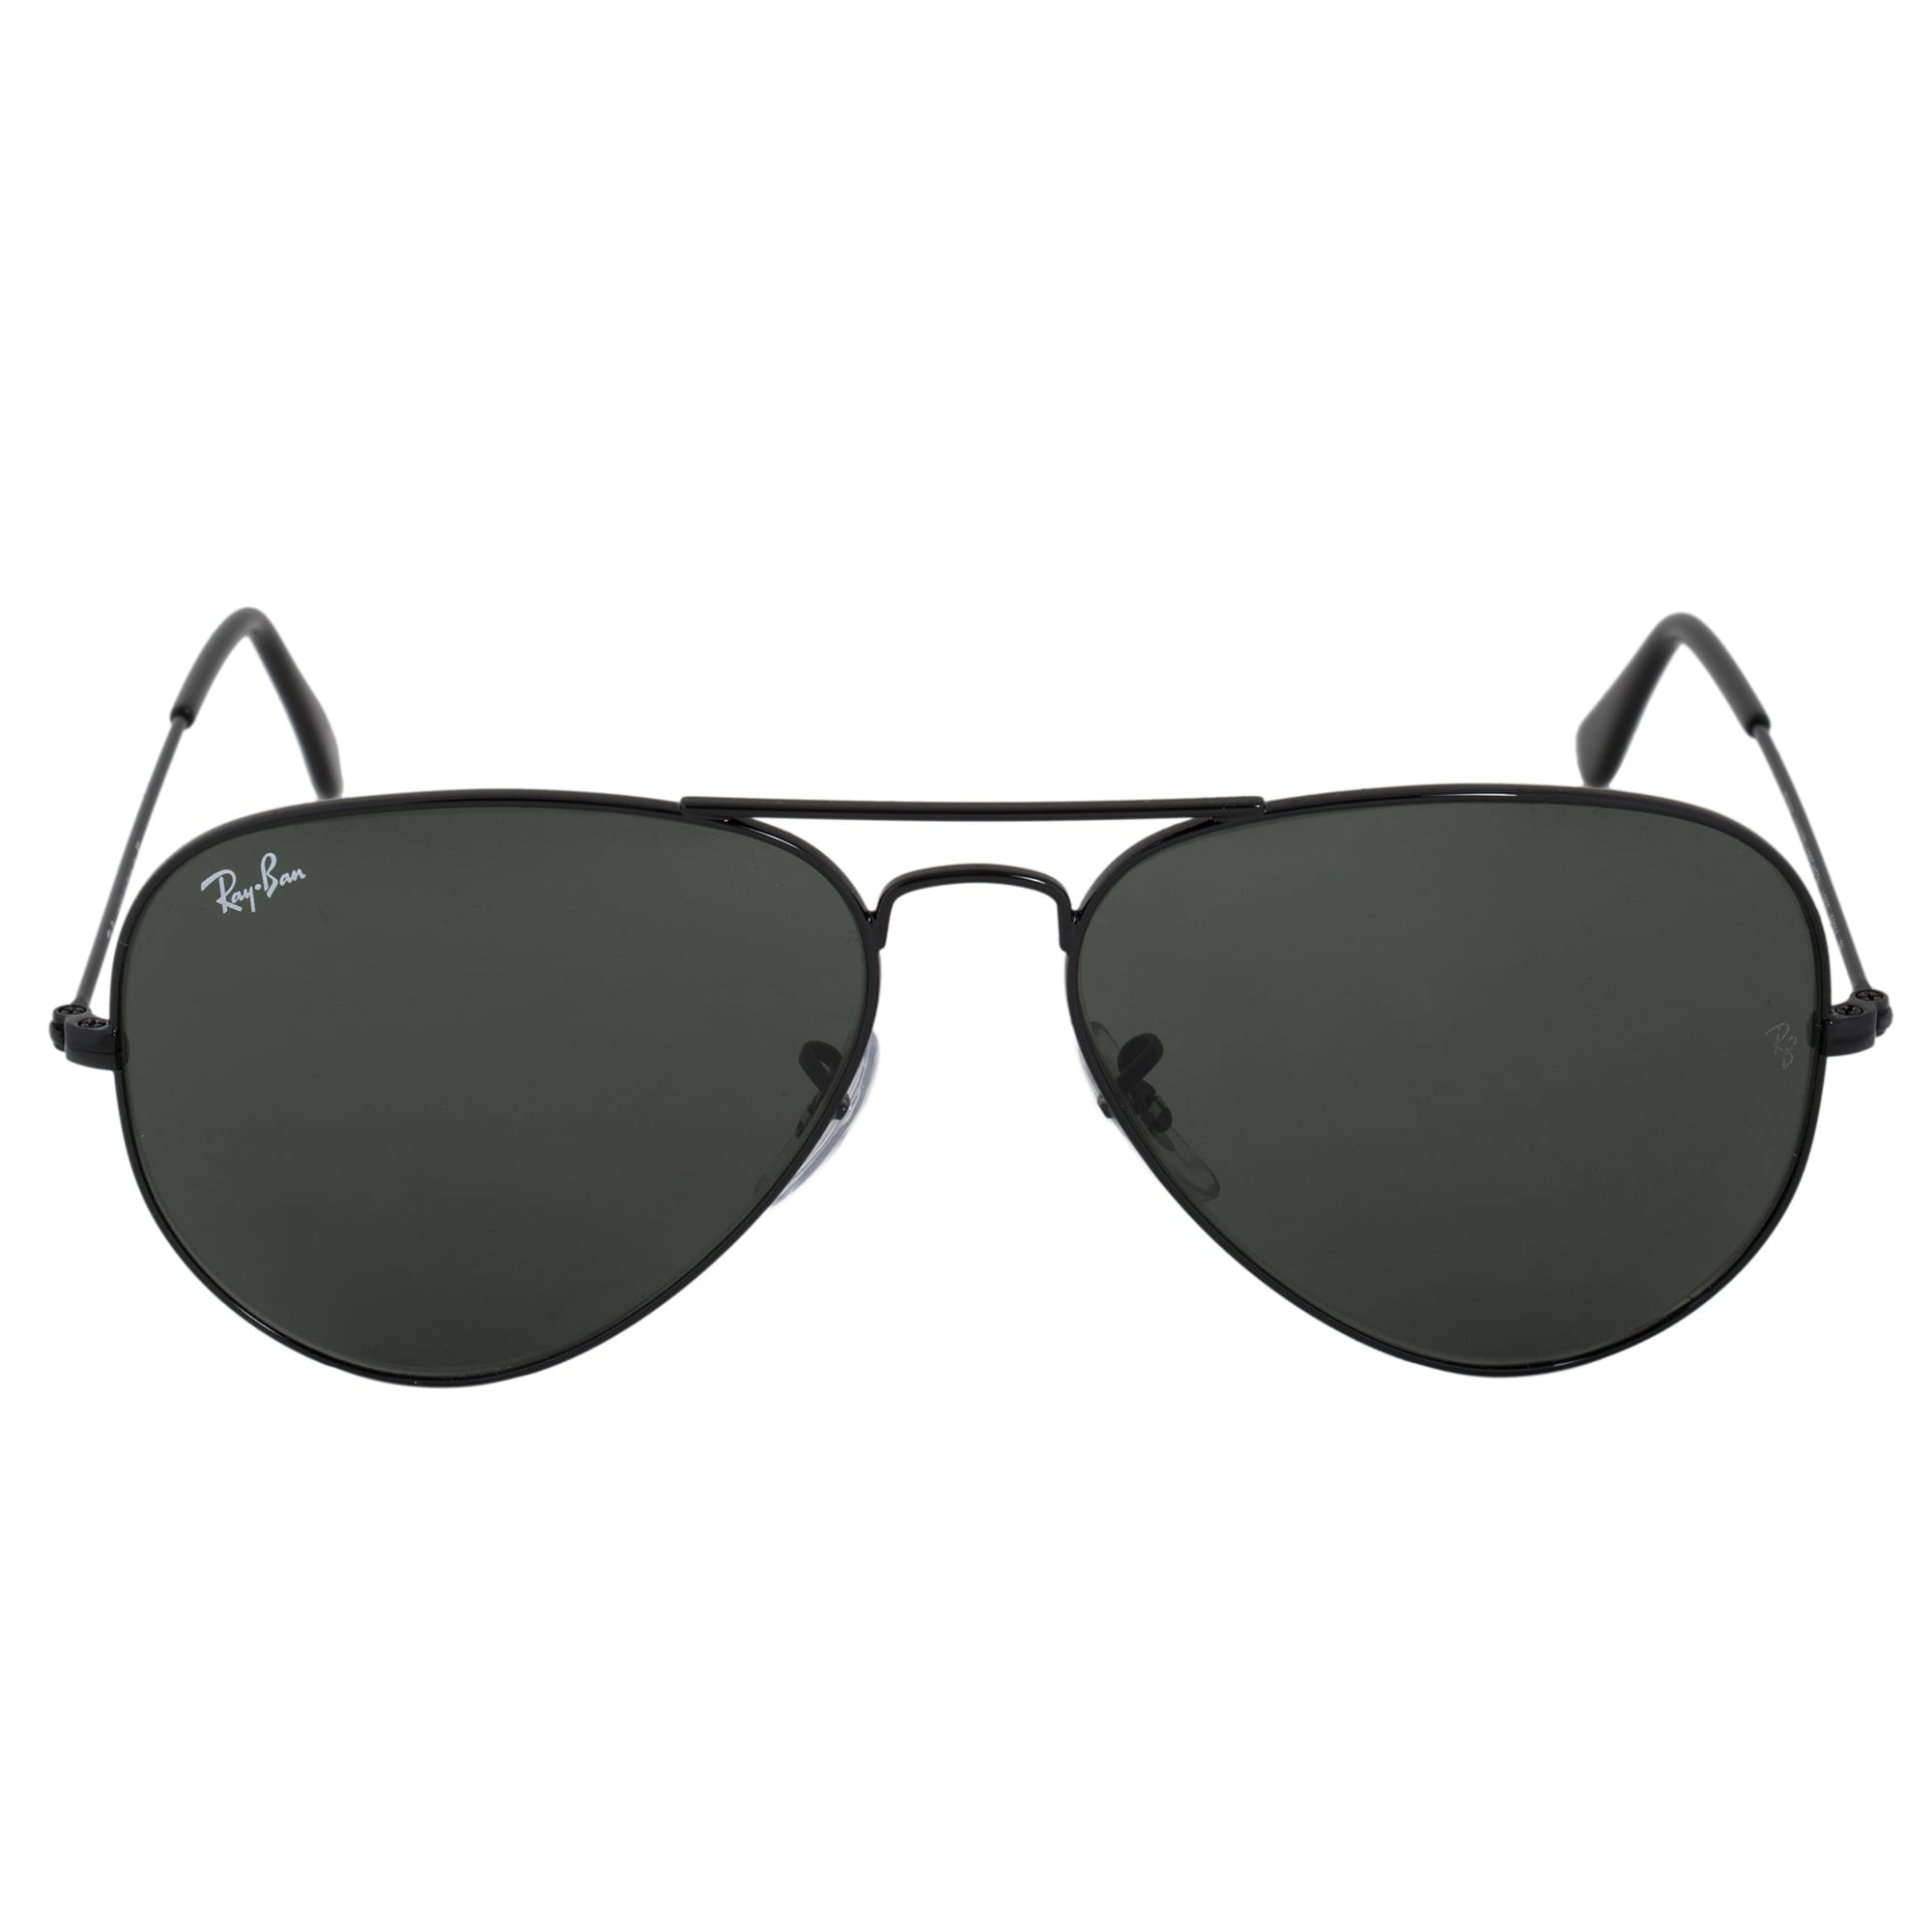 5039f7cd5e Shop Ray-Ban Aviator Large Metal Sunglasses RB3025 L2823 58 - Ships To  Canada - Overstock.ca - 21408708